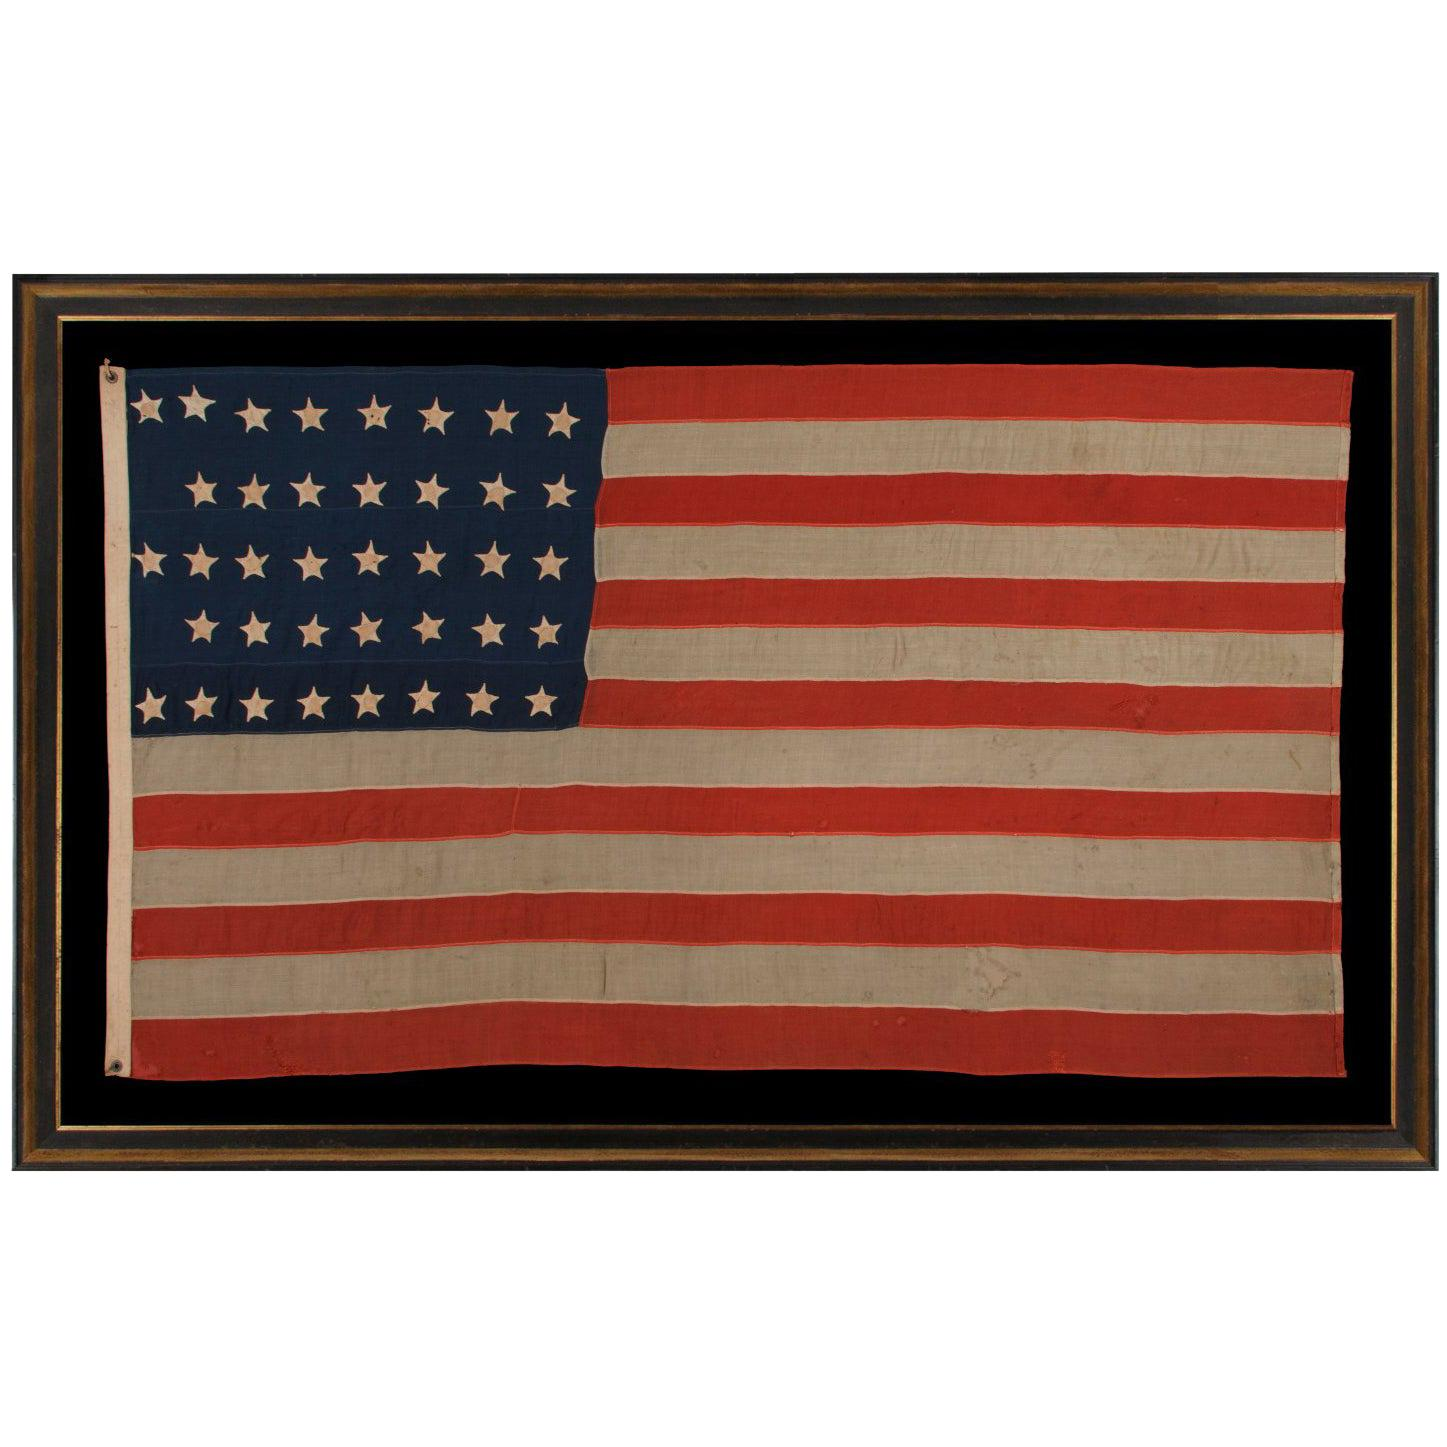 """38 Hand-Sewn Stars in a """"Notched"""" Pattern on an Antique American Flag"""